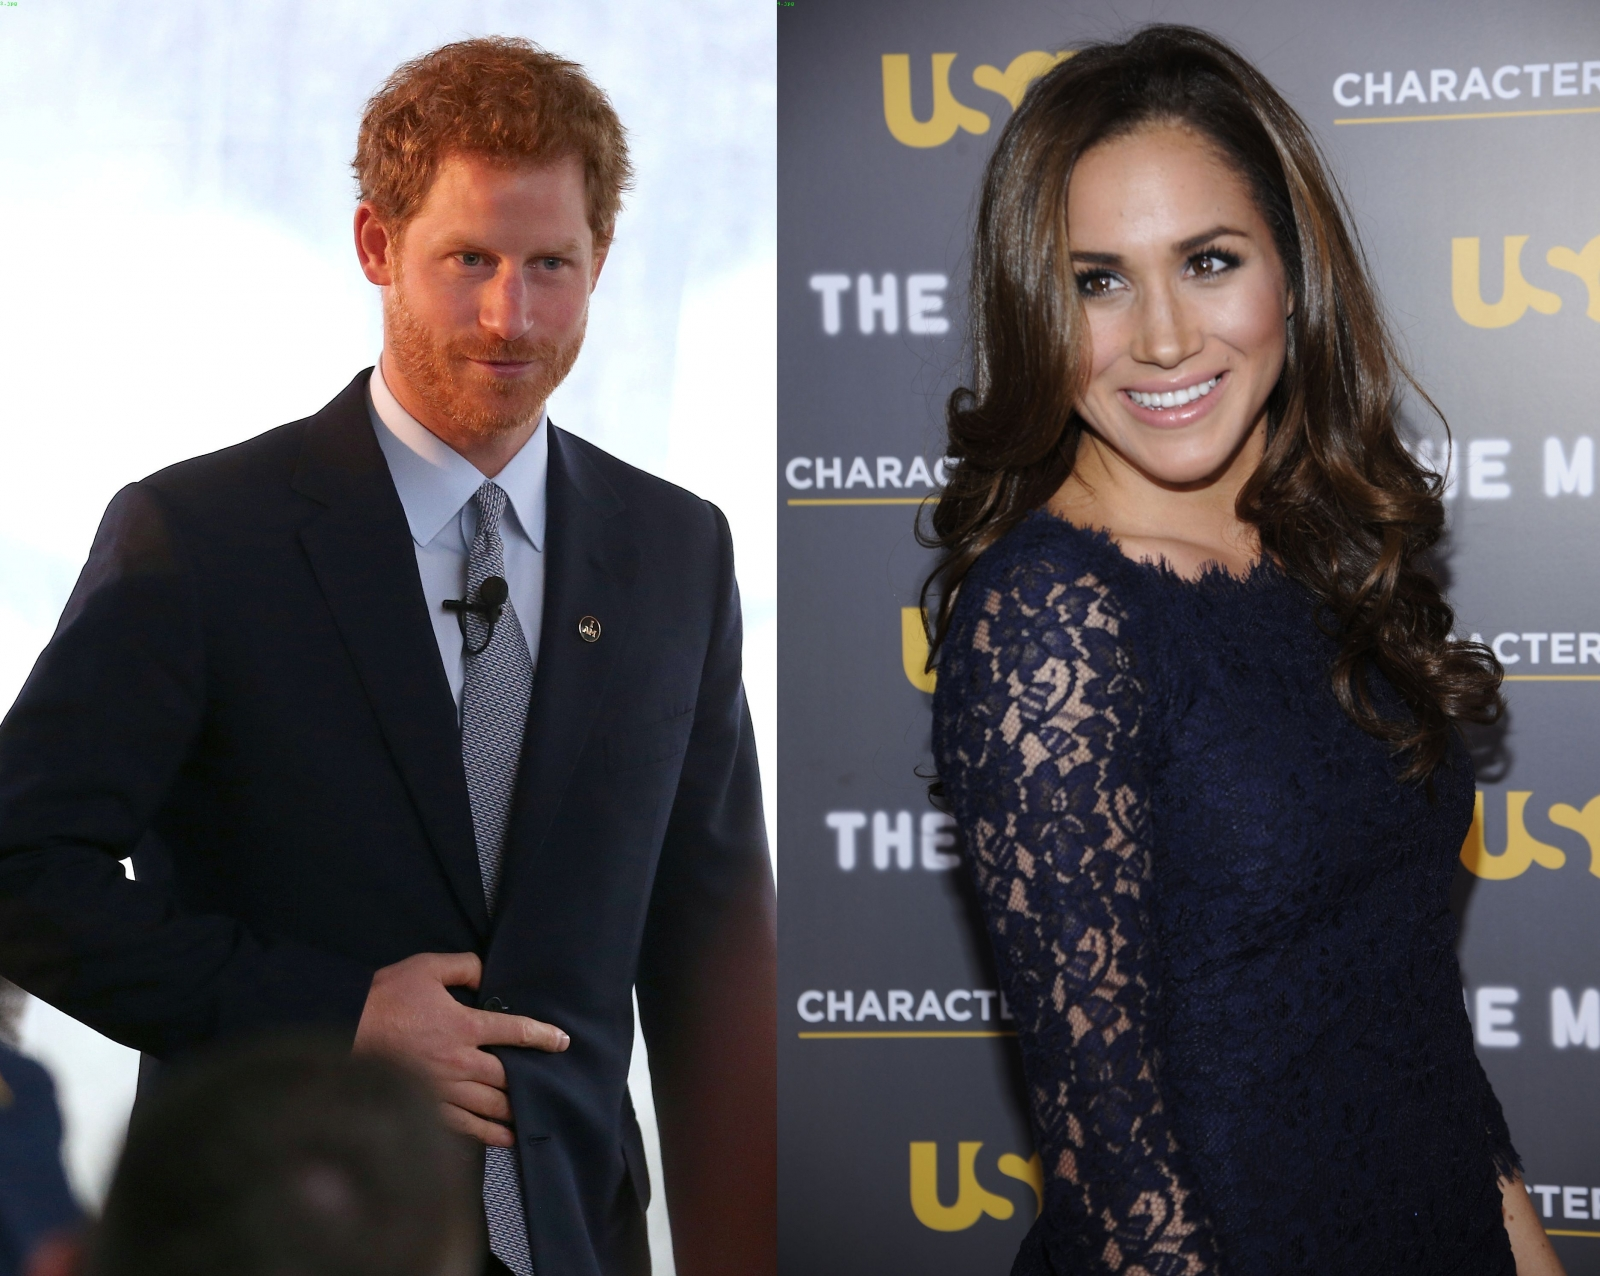 Prince Harry Puts A Ring On Meghan Markle